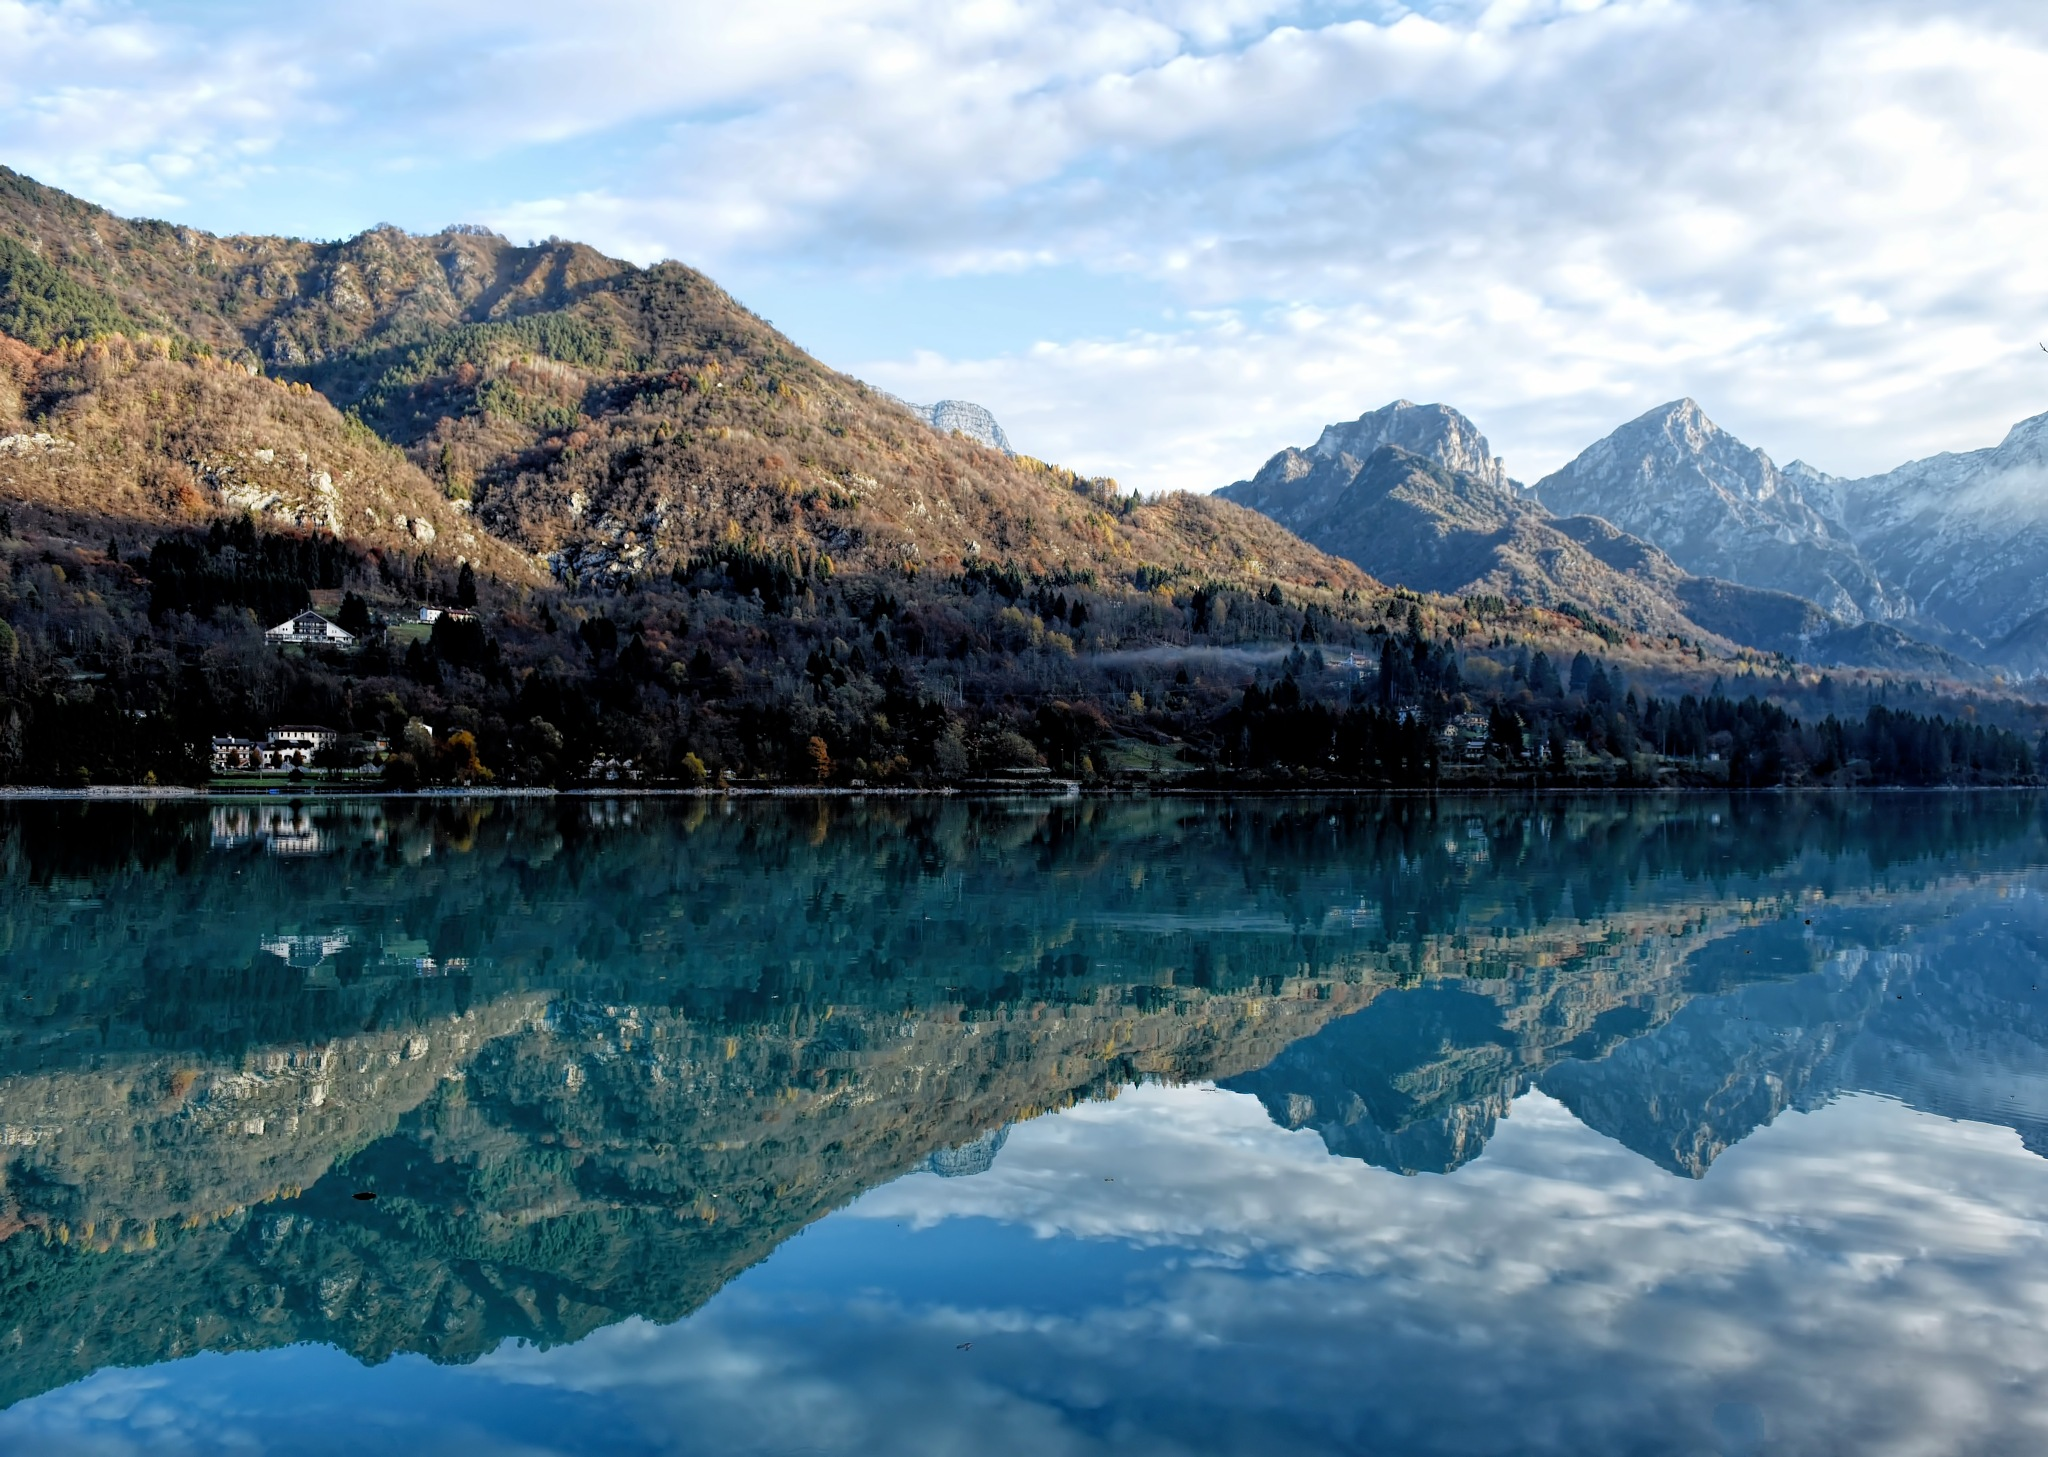 Mountain Reflections by Mirto